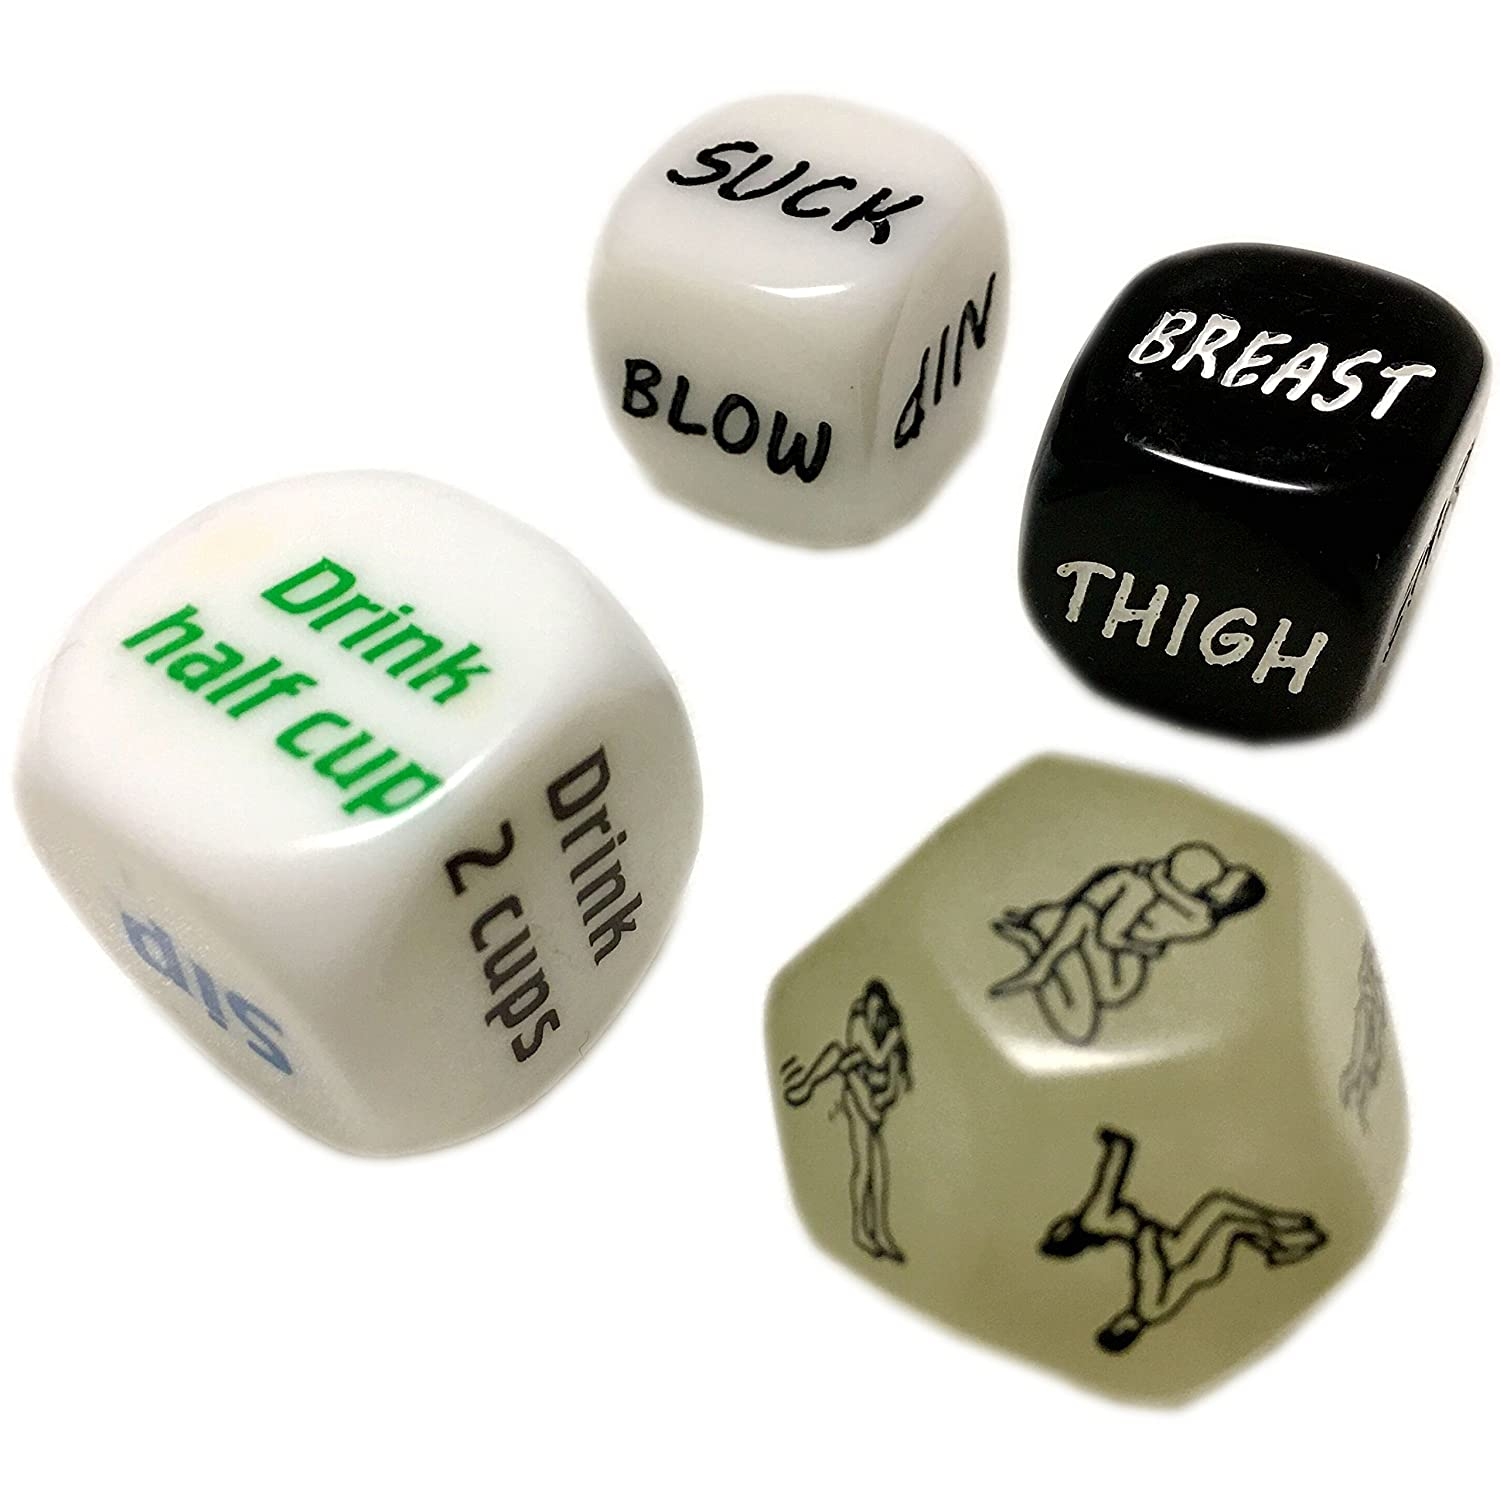 Amazon.com: U-Shark Glow 12 Face Spicy Sex Dice Game Toy for Bachelor Party  or Couples Novelty Valentine's Gift(1pc Glow Dice+1pc White Drink Dice+ 1  Pair ...